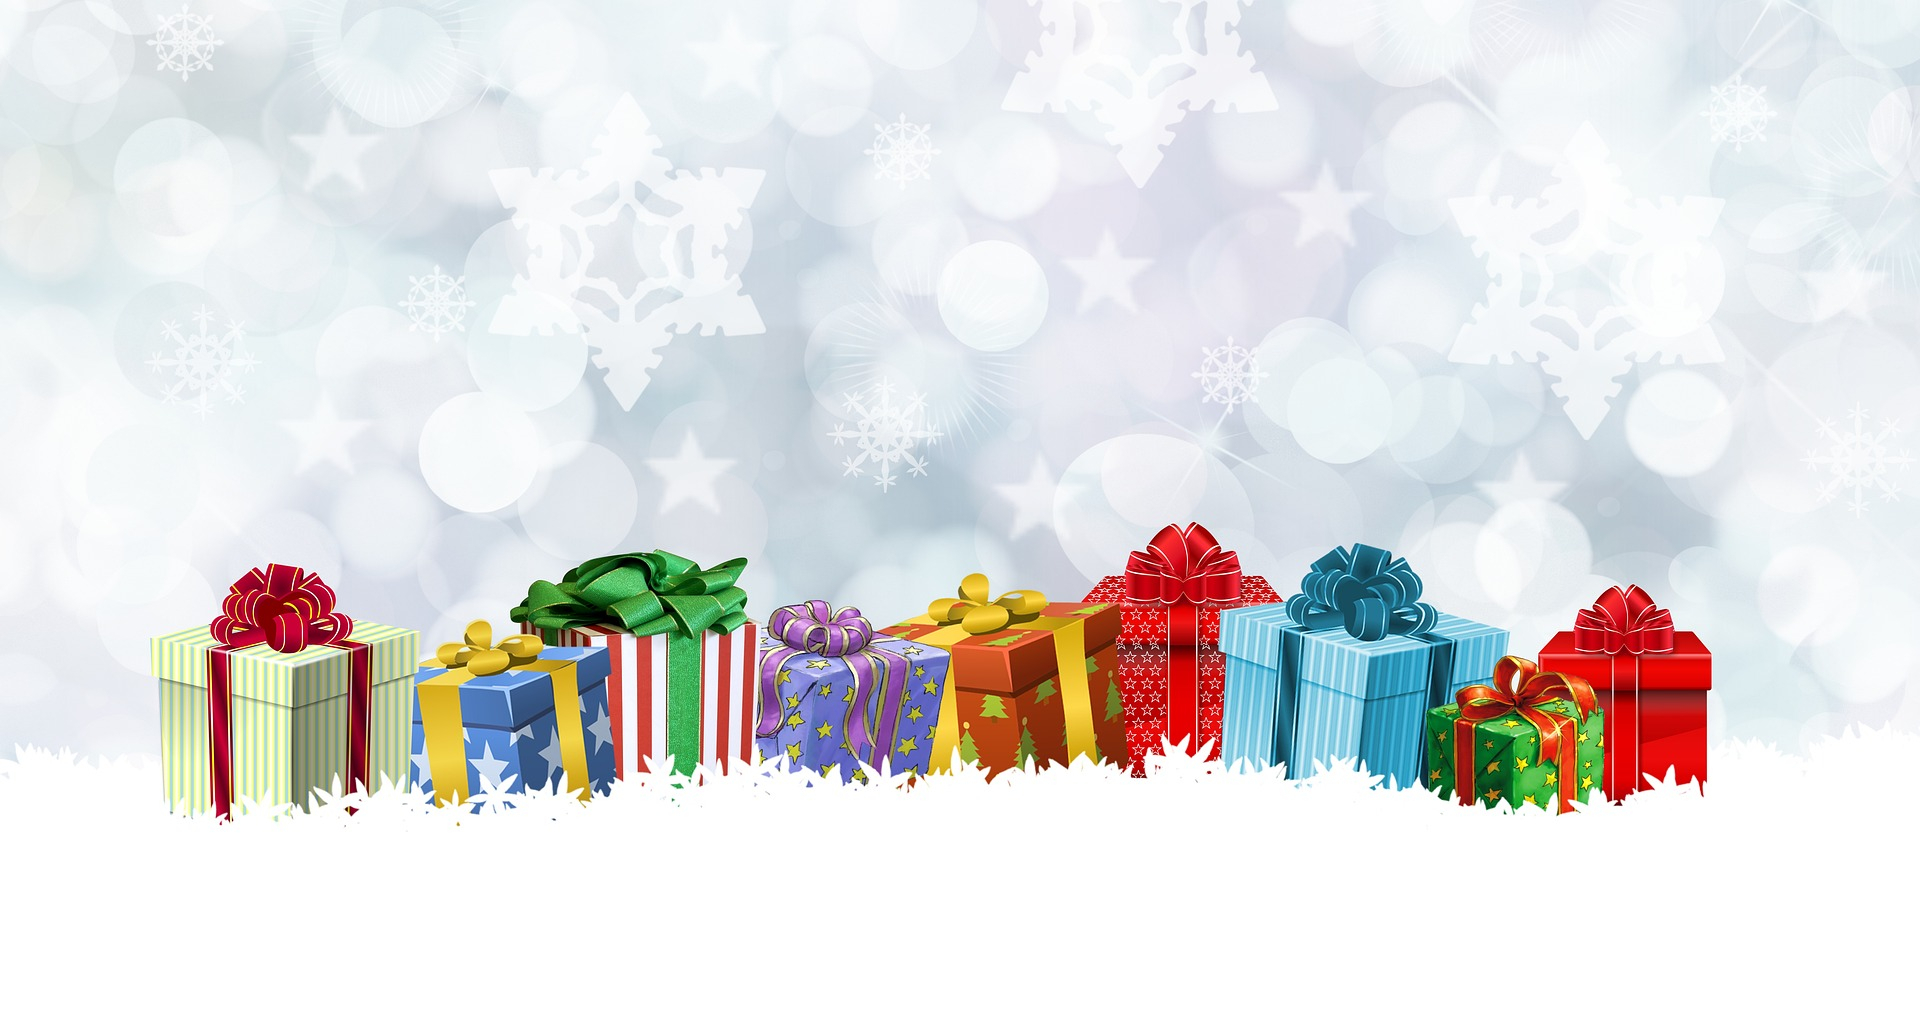 Gifts Of Seasons image